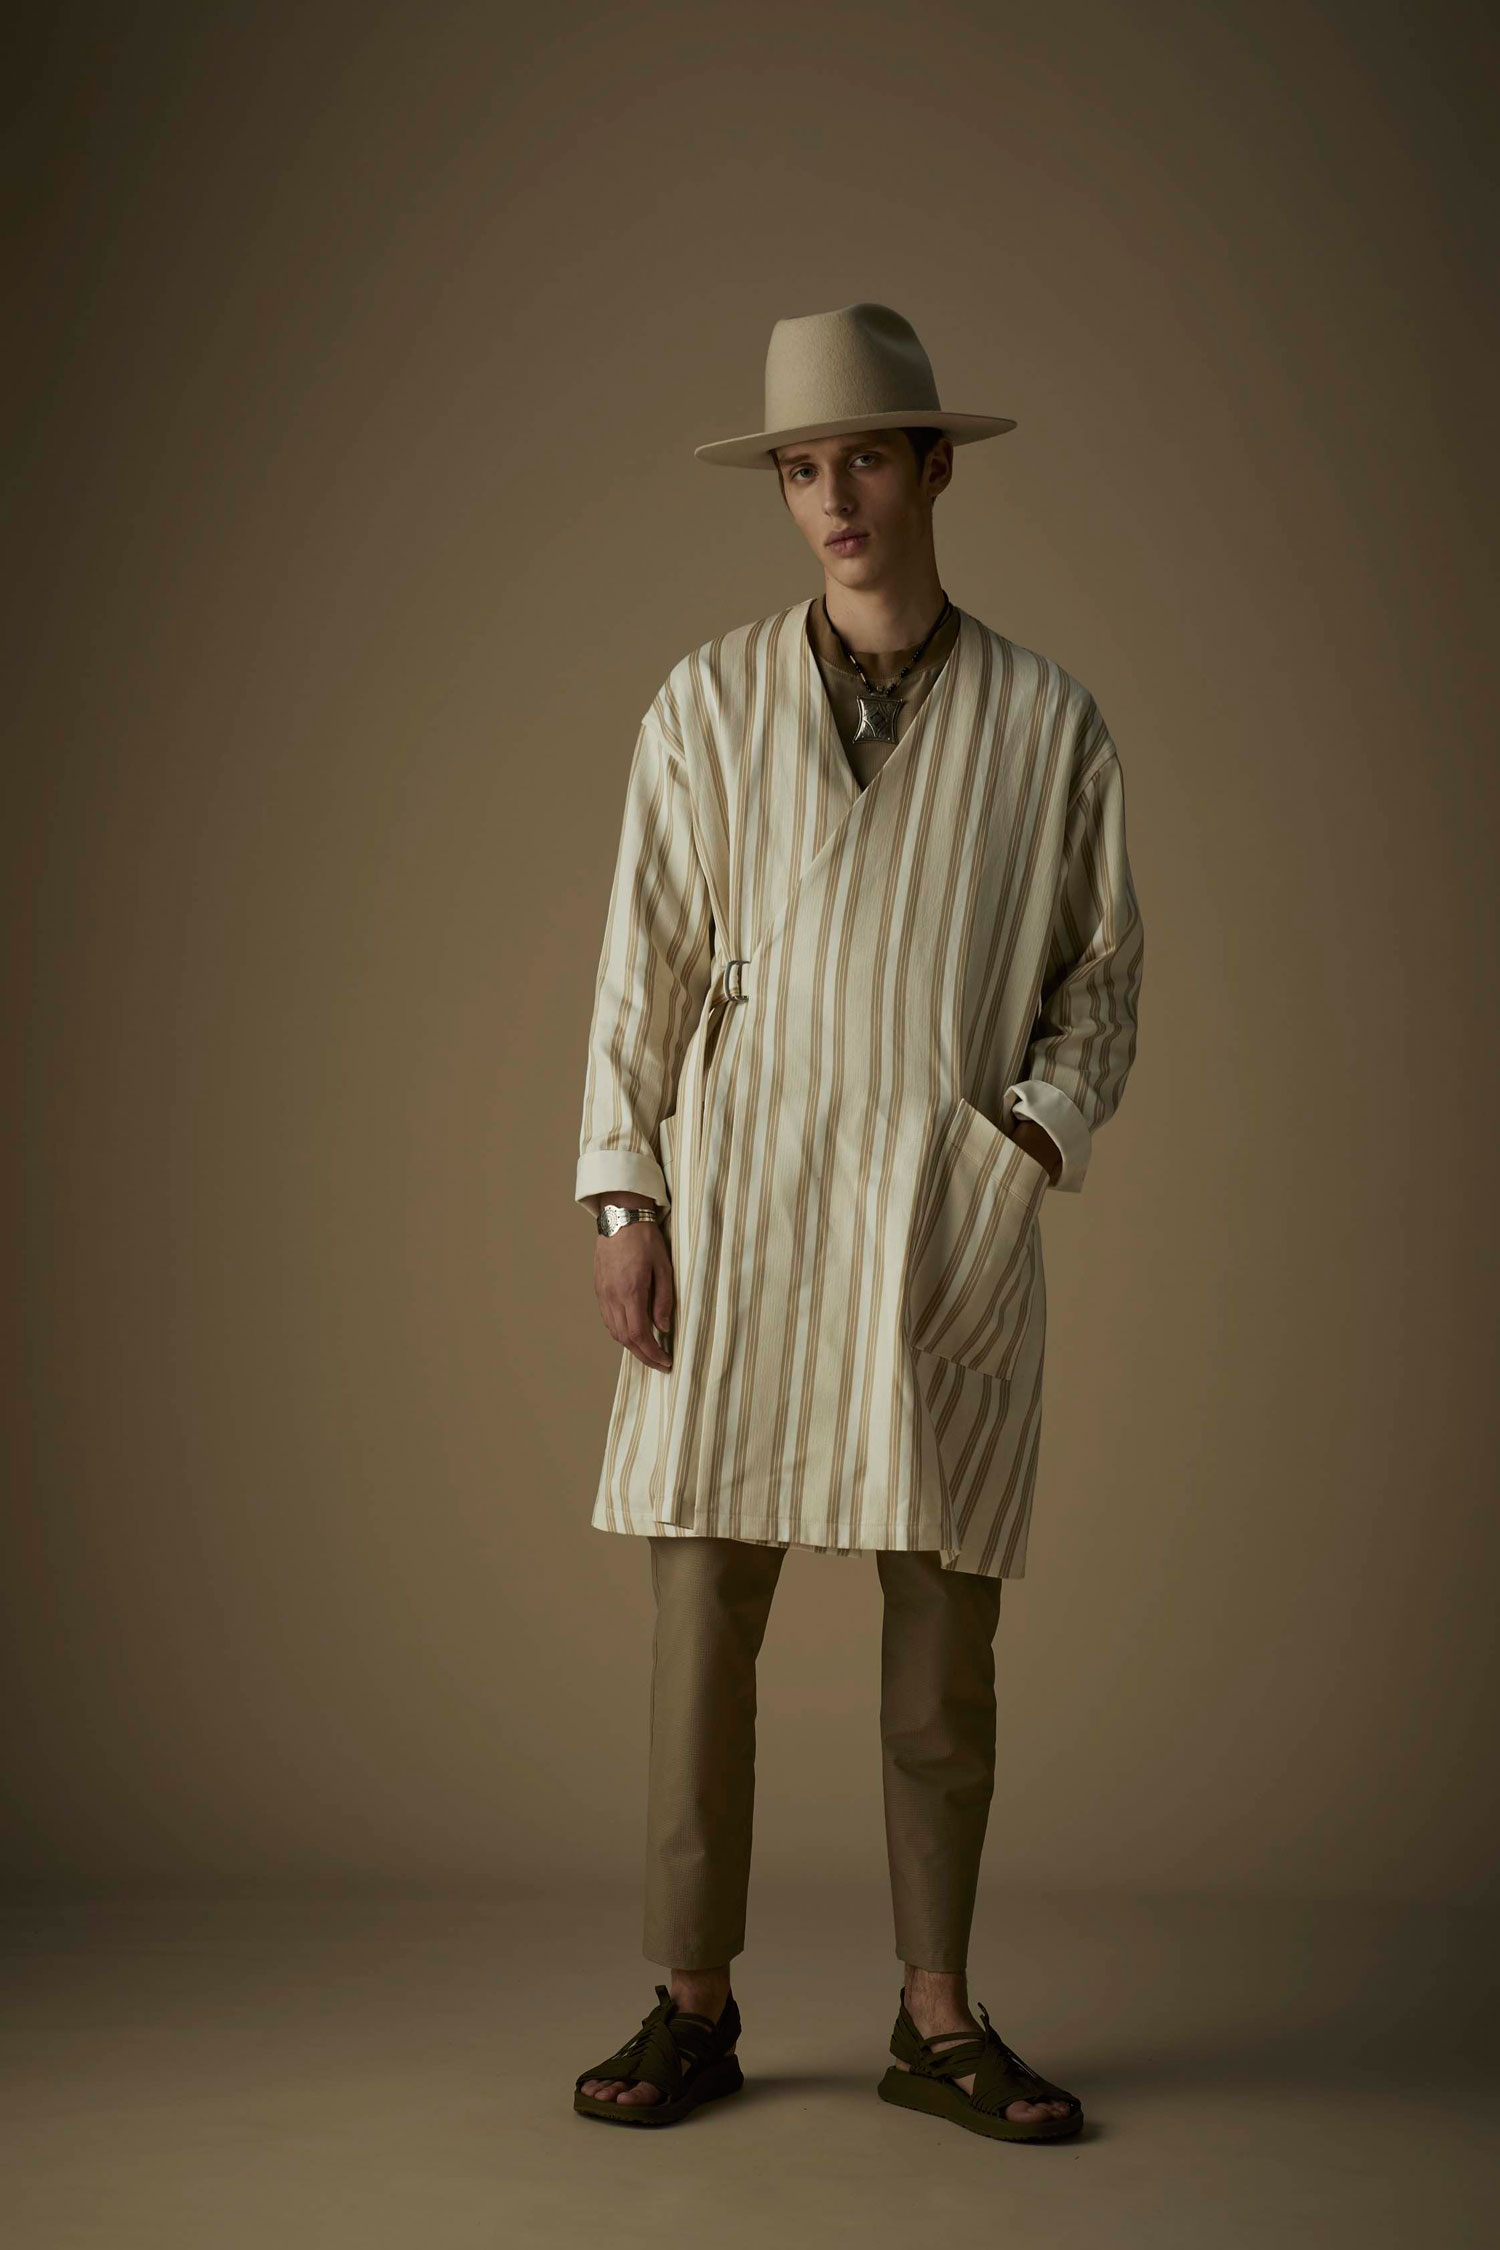 【MEN】JOHNBULL SPRING SUMMER 2019 MENS COLLECTION アイテム